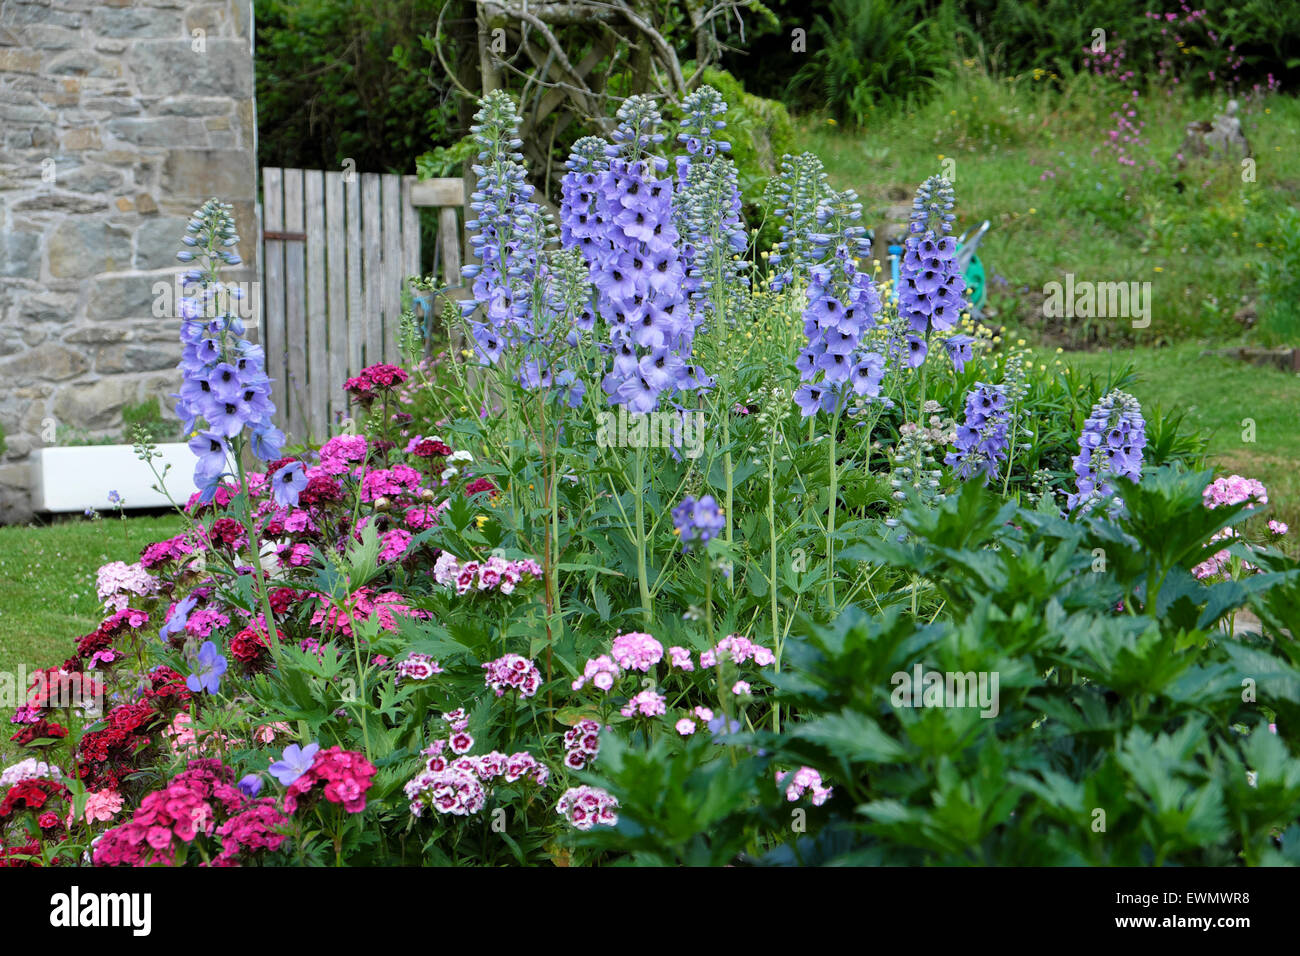 Blue Delphiniums And Sweet William Flowers Growing In A Herbaceous